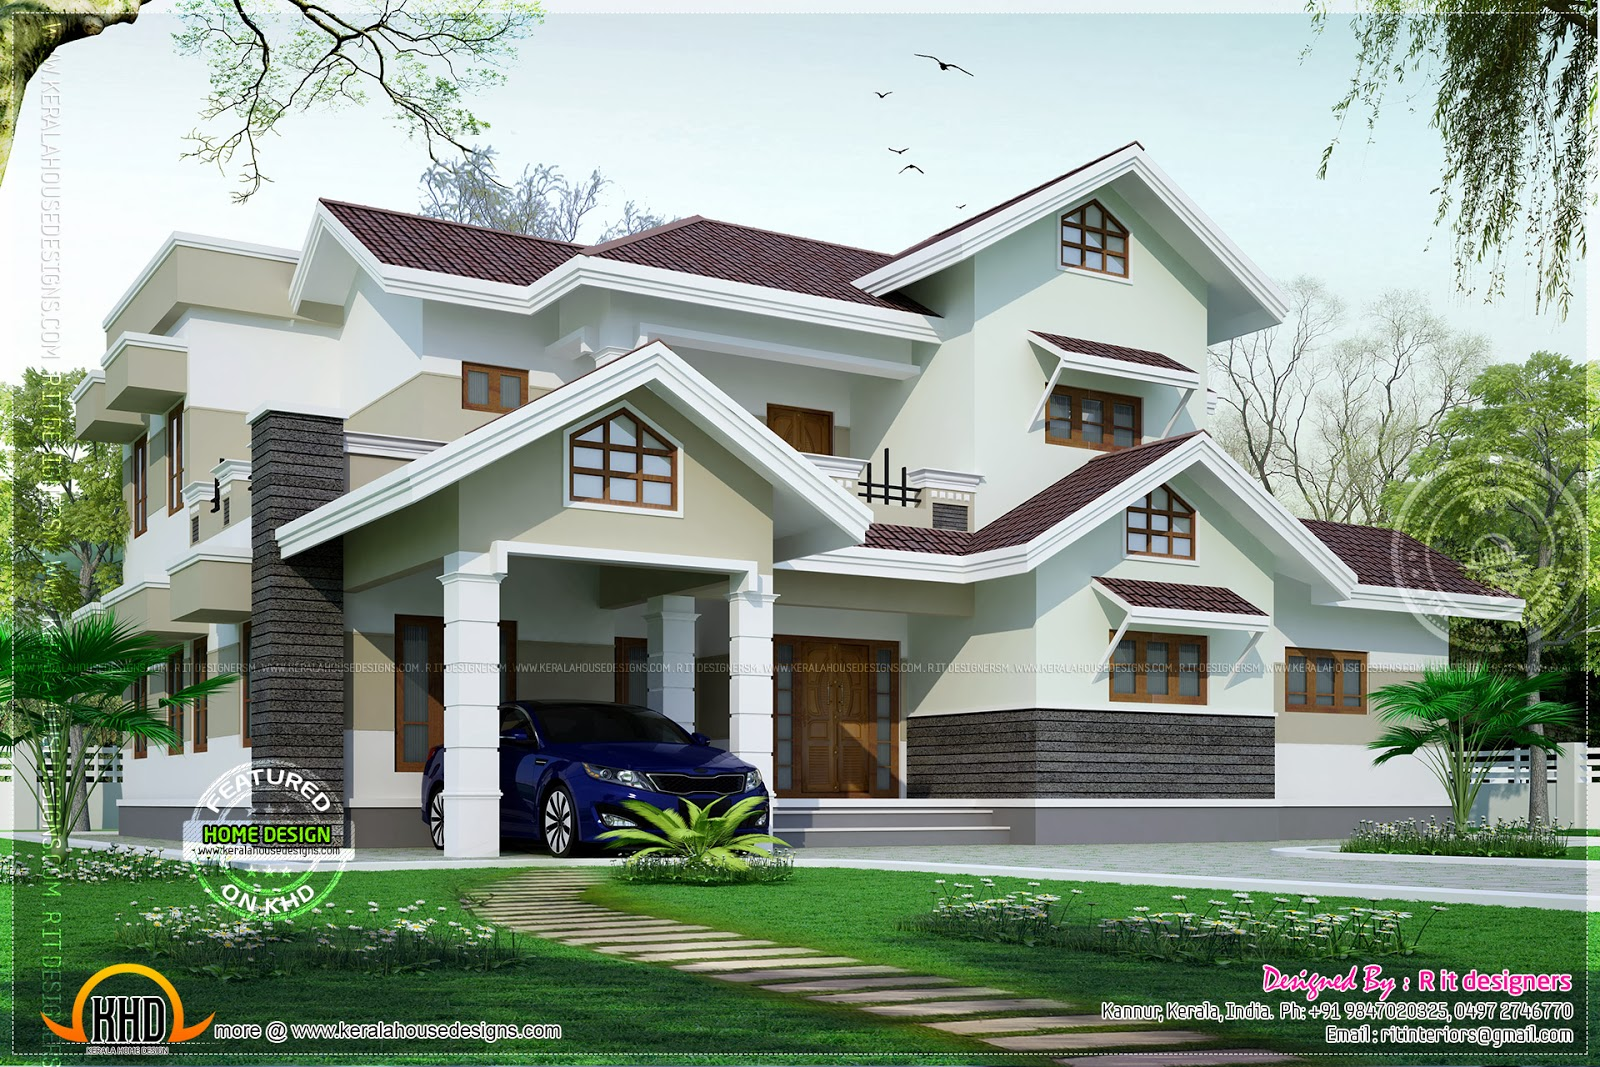 Cost of new roof 2000 sq ft home 28 images low cost for Average cost to build a 2500 sq ft home